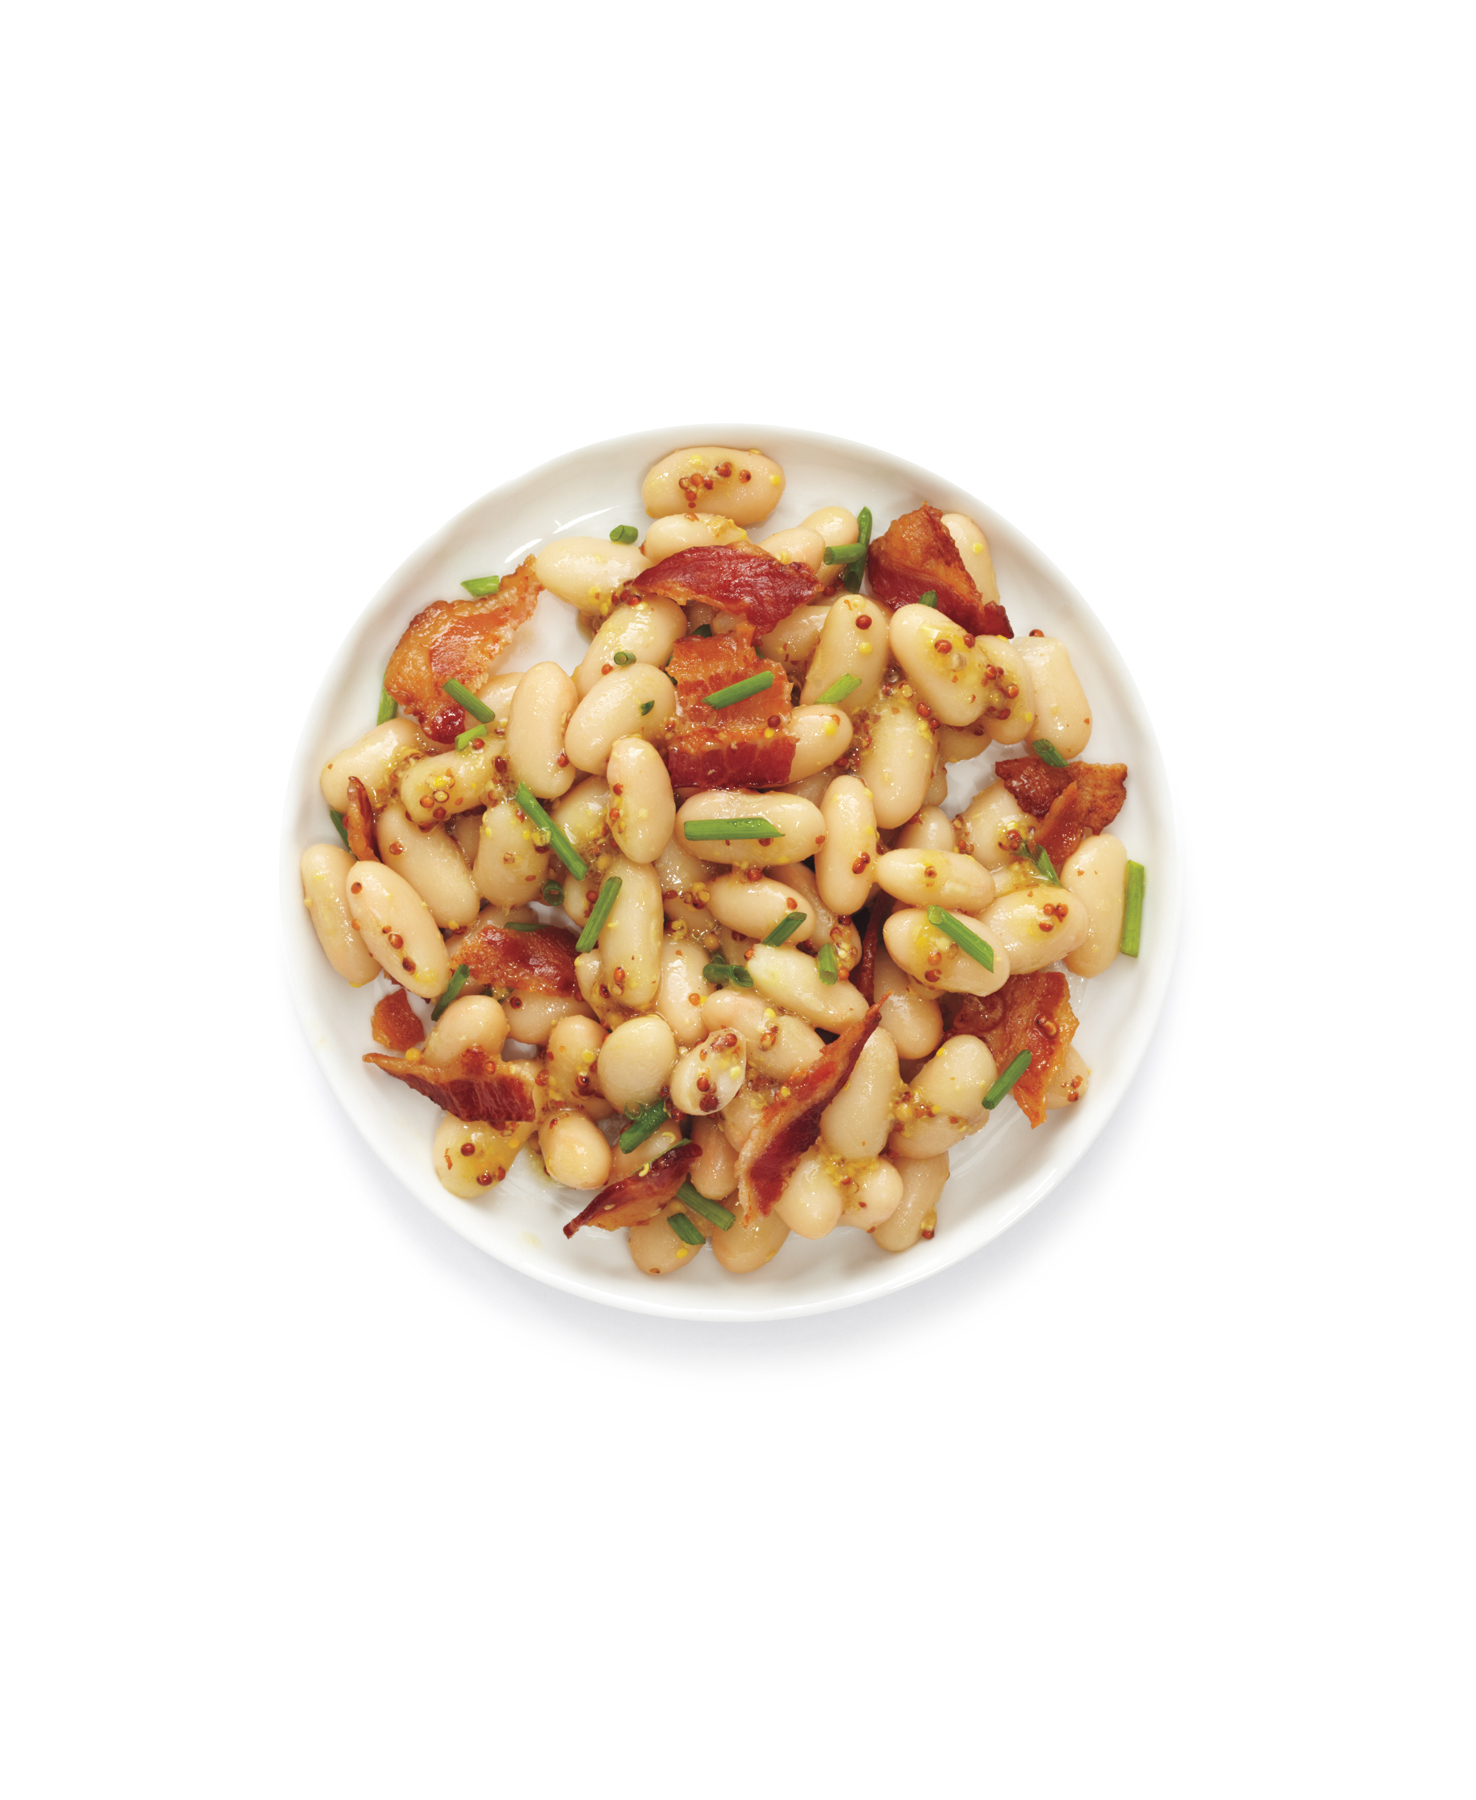 18 easy high protein recipes real simple 18 easy high protein recipes bean salad with bacon and chives forumfinder Images